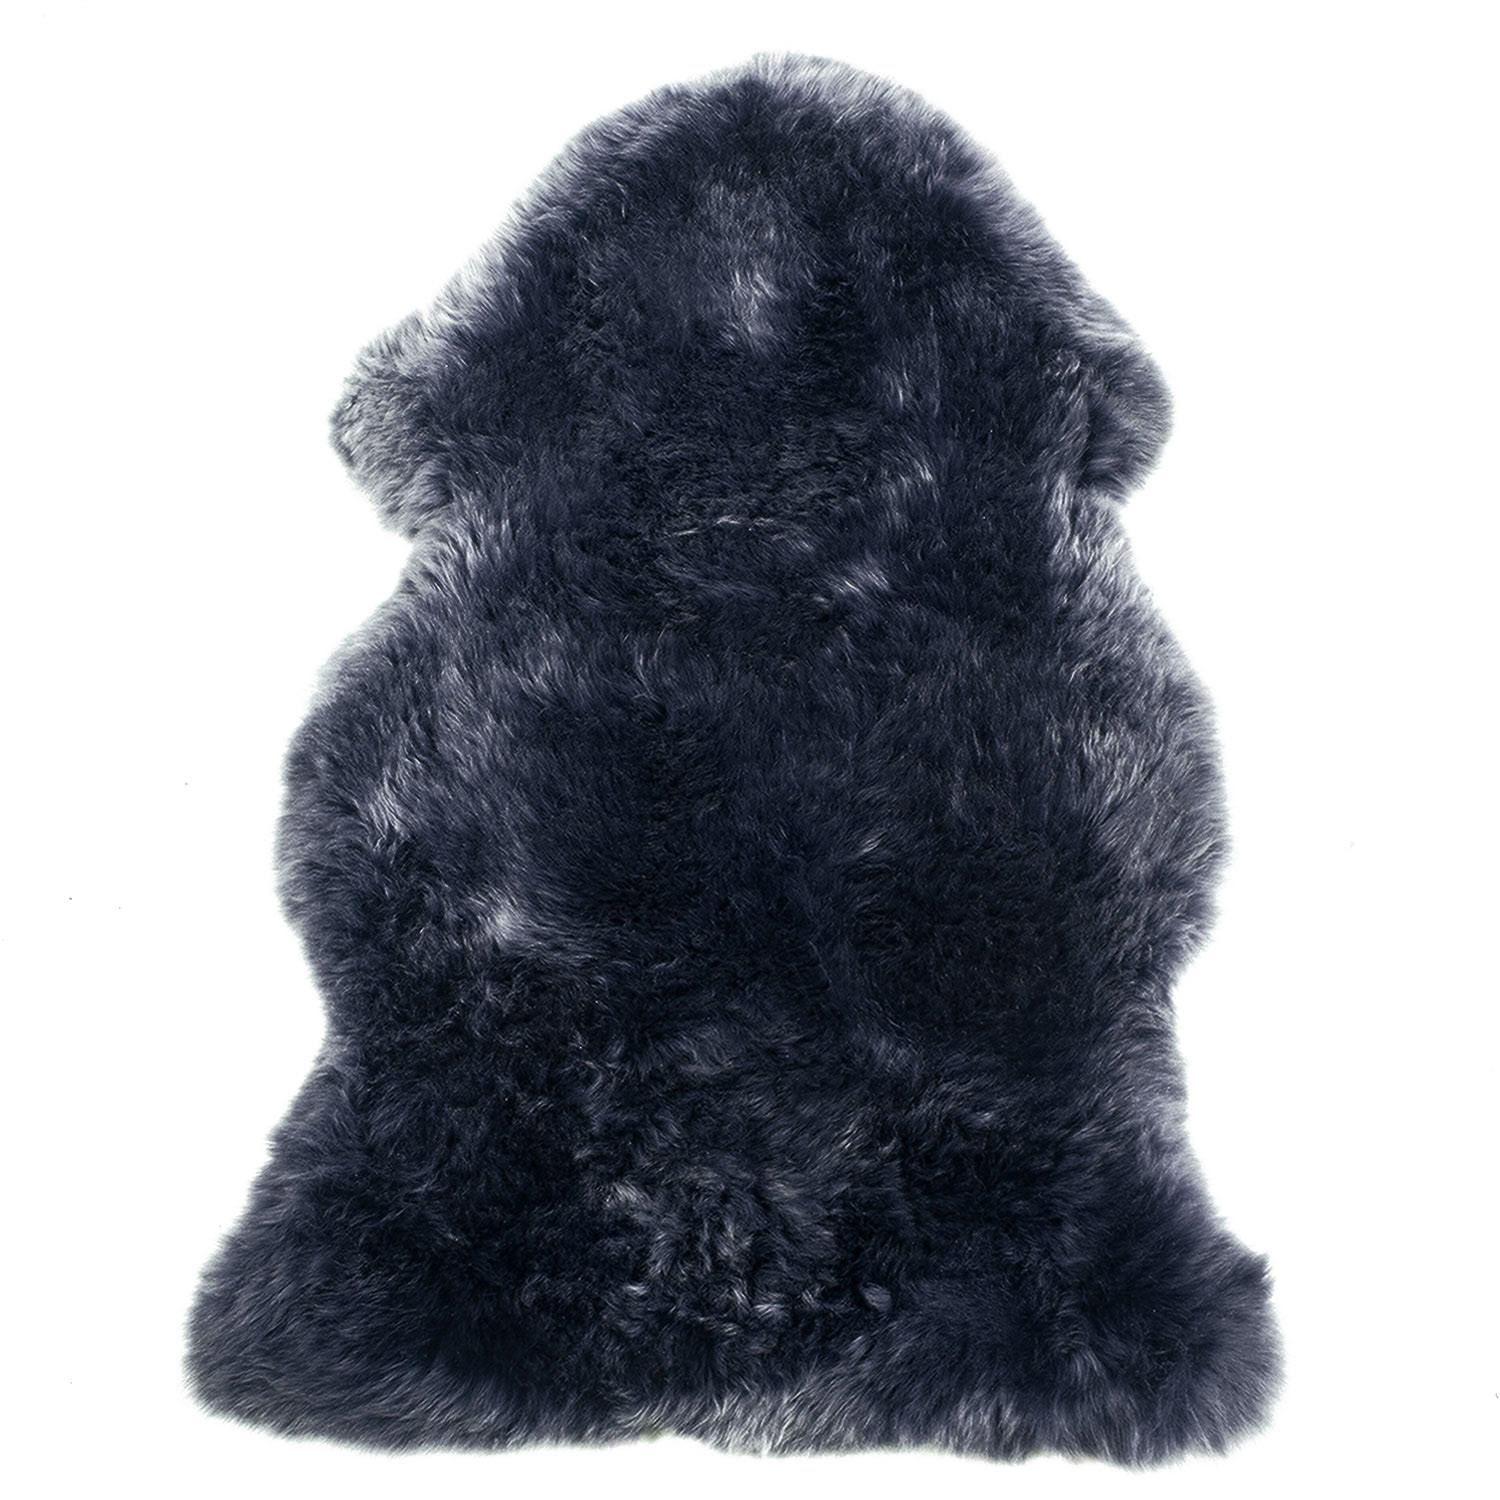 Sheepskin Rug Single Pelt Navy – Engel Sheepskin Horse Tack